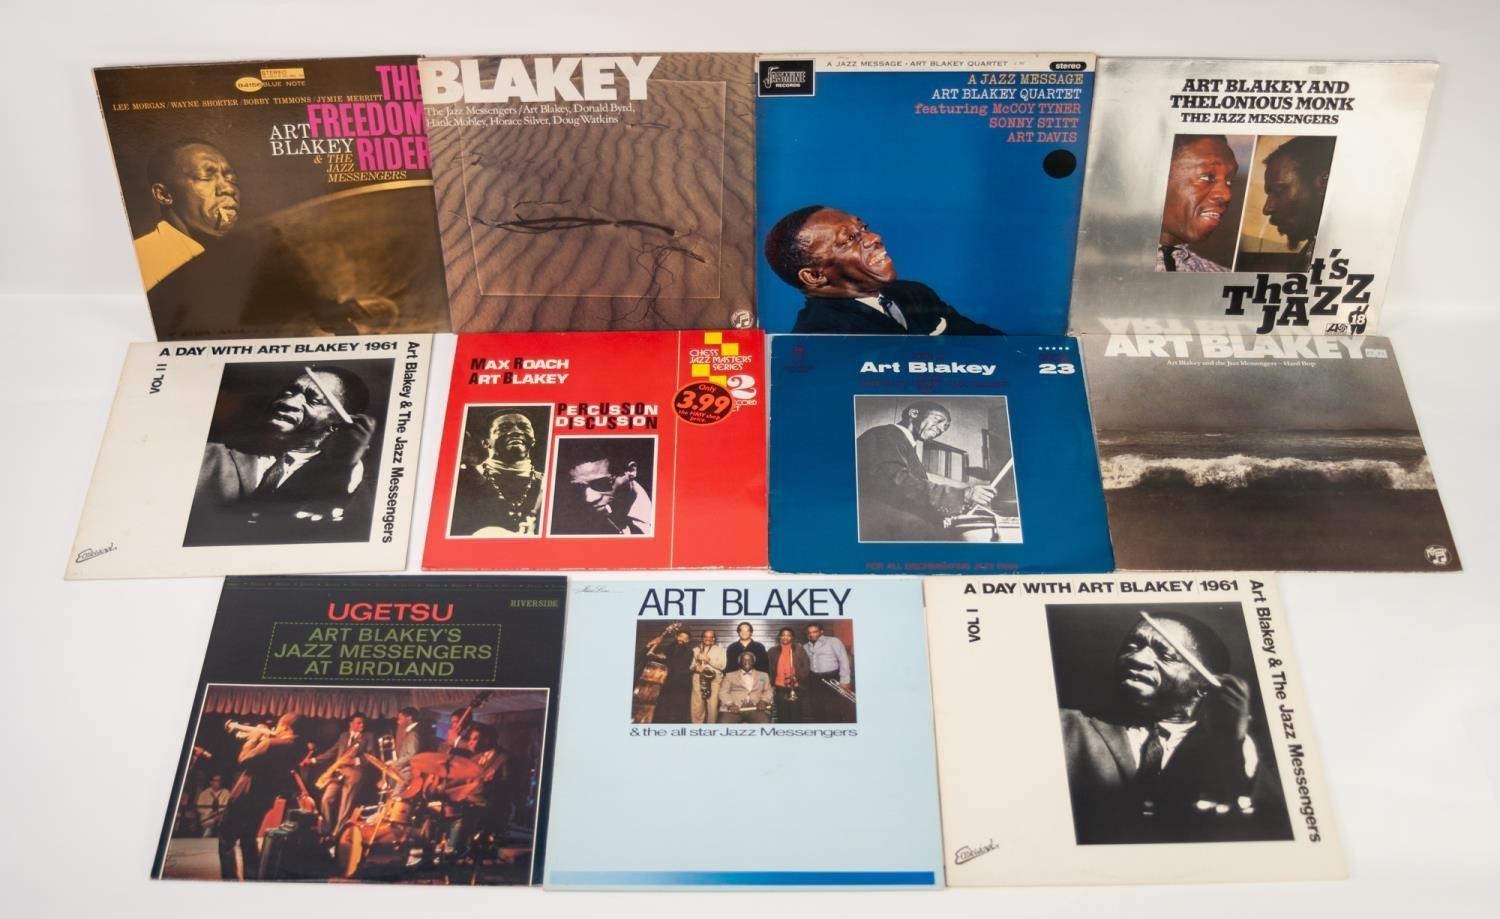 JAZZ, VINYL RECORDS, B IS FOR ART BLAKEY AND THE JAZZ MESSENGERS-THE FREEDOM RIDER, Blue Note (BLP